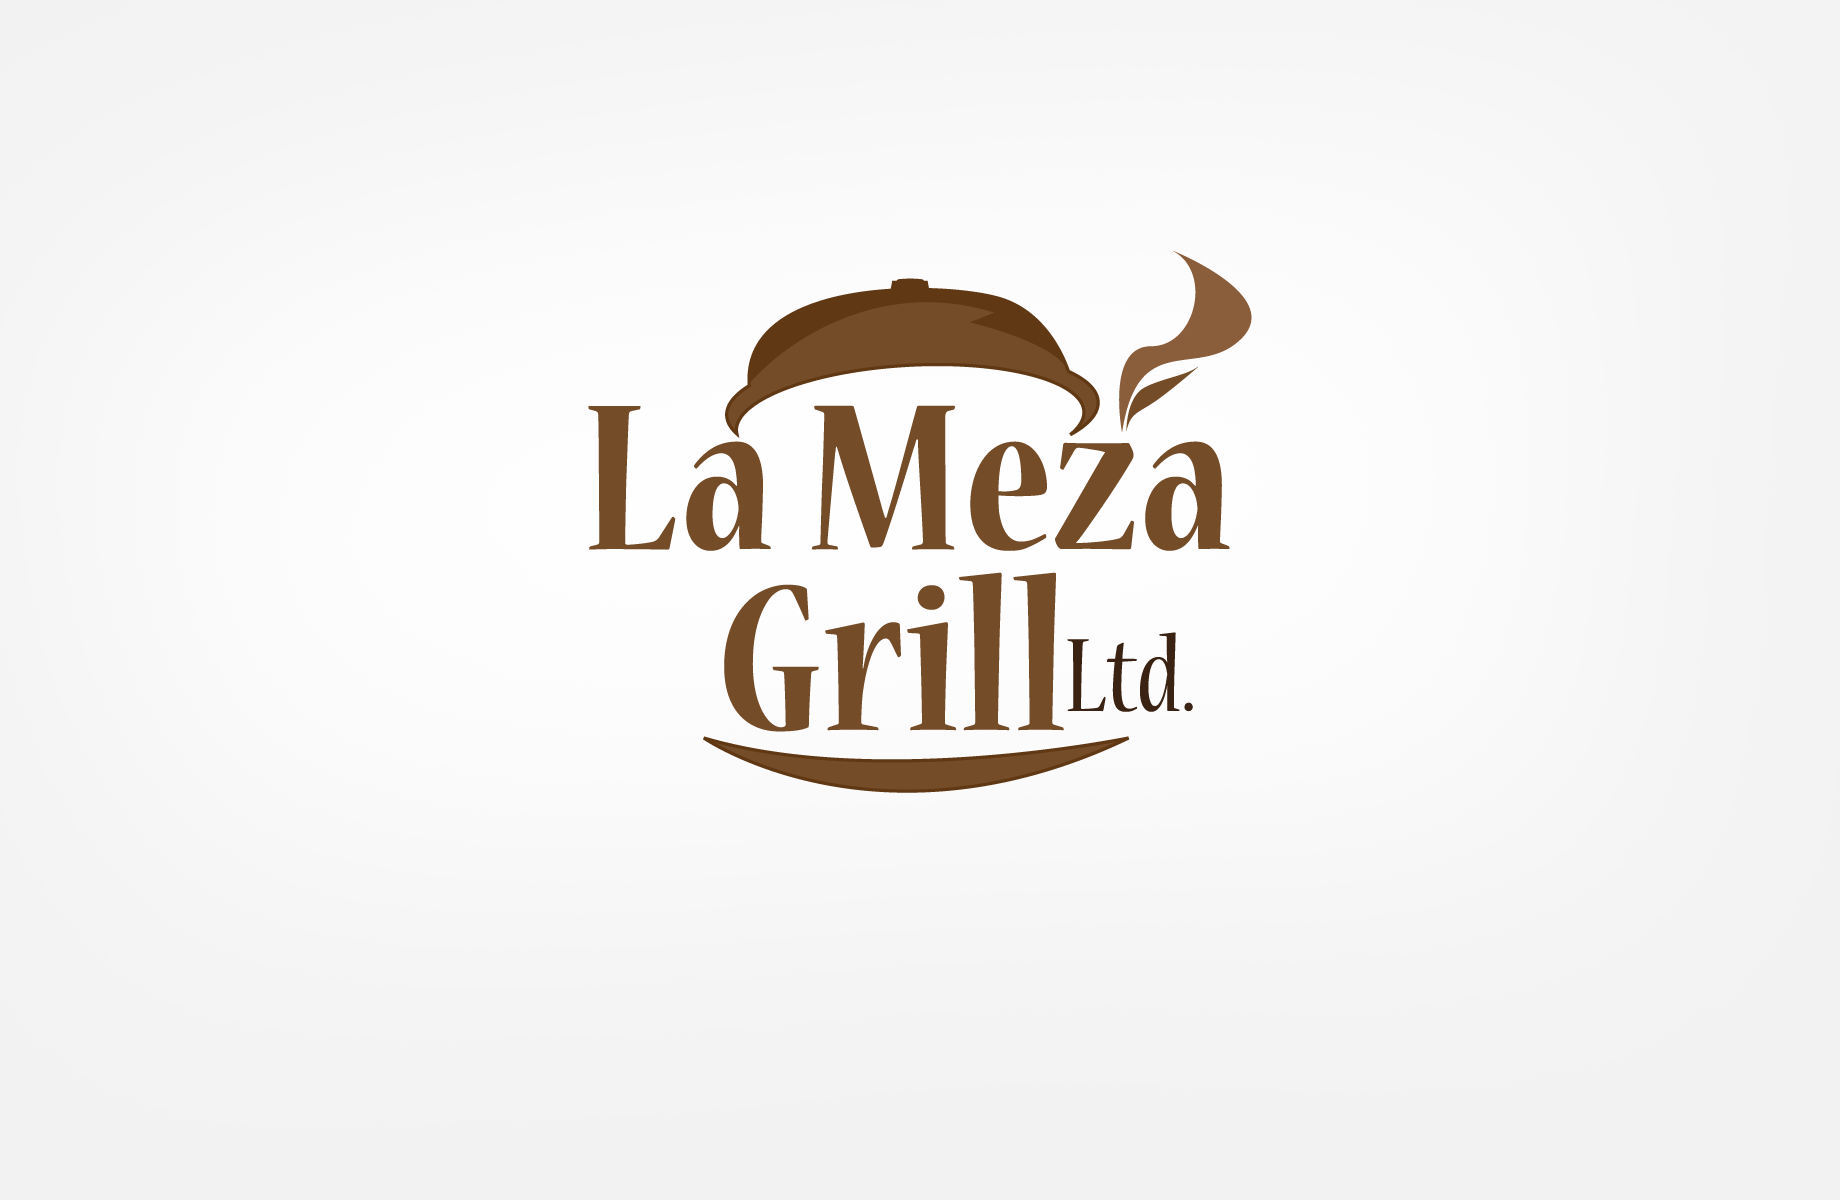 Logo Design by Jan Chua - Entry No. 37 in the Logo Design Contest Inspiring Logo Design for La Meza Grill Ltd..